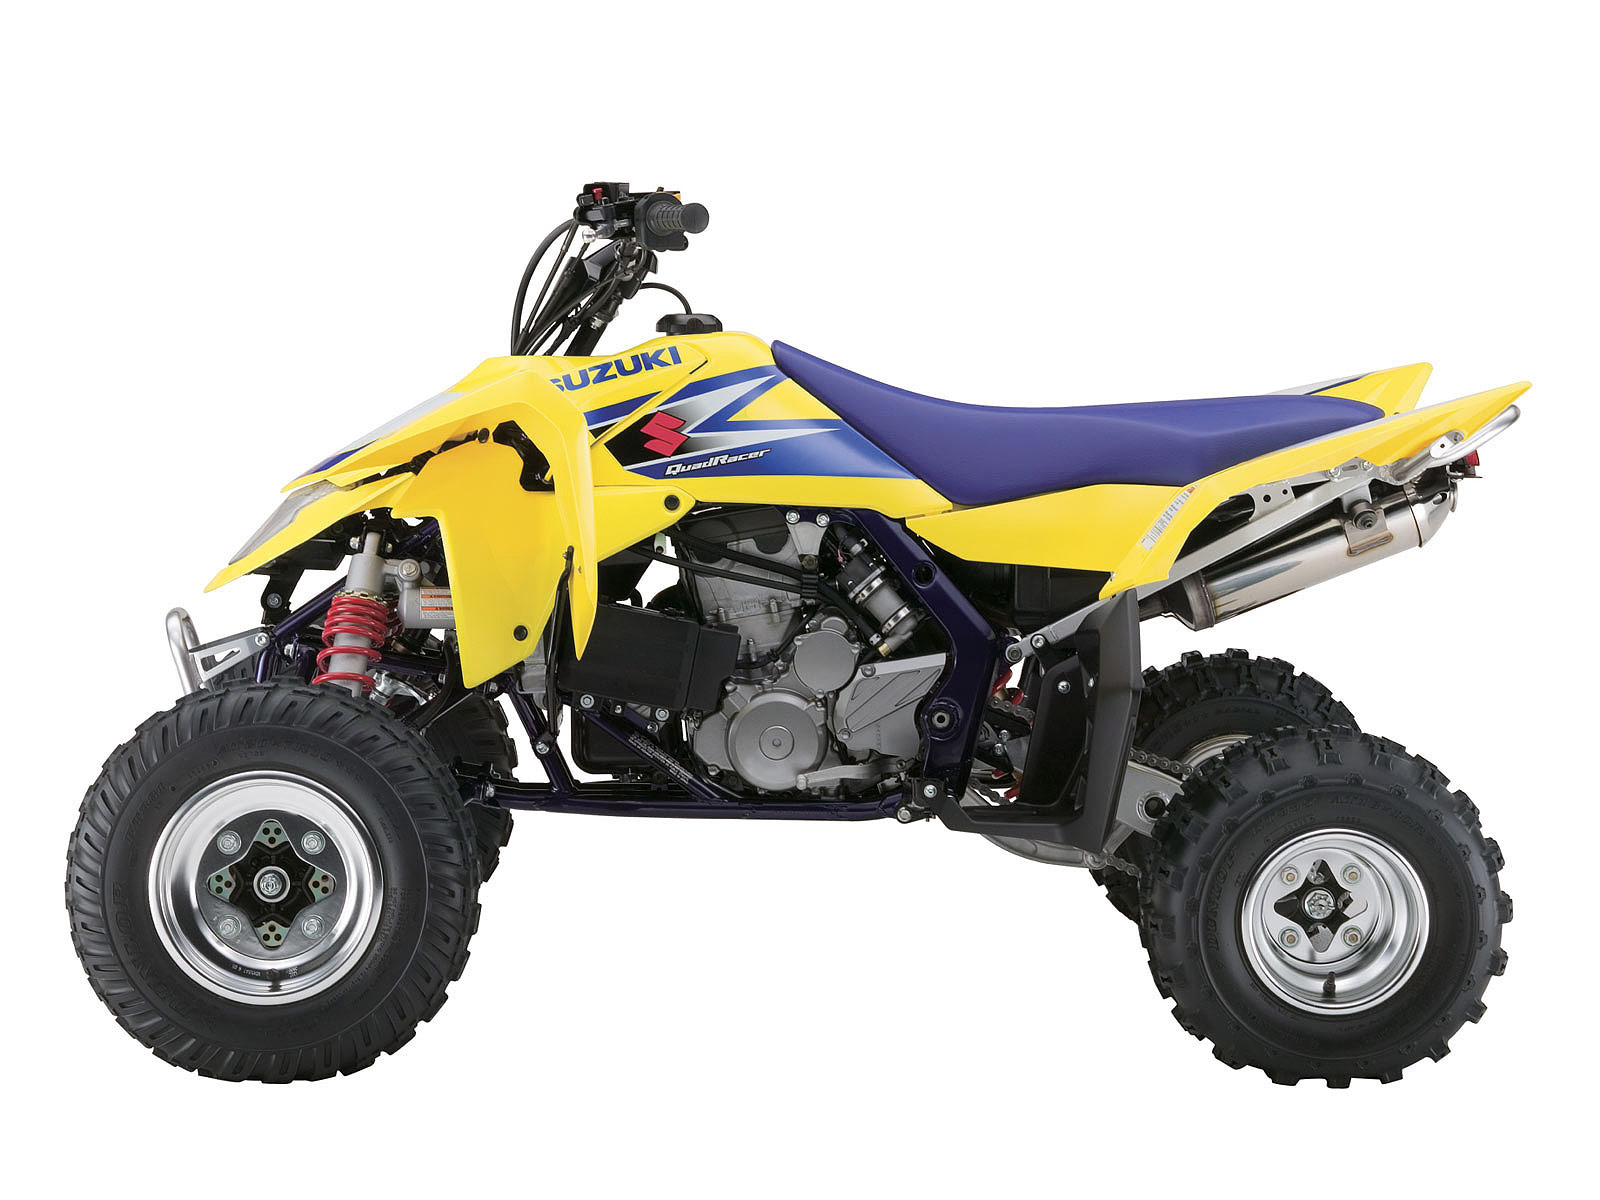 2006 SUZUKI ATV LTR-450 pictures | specs | accident lawyers.